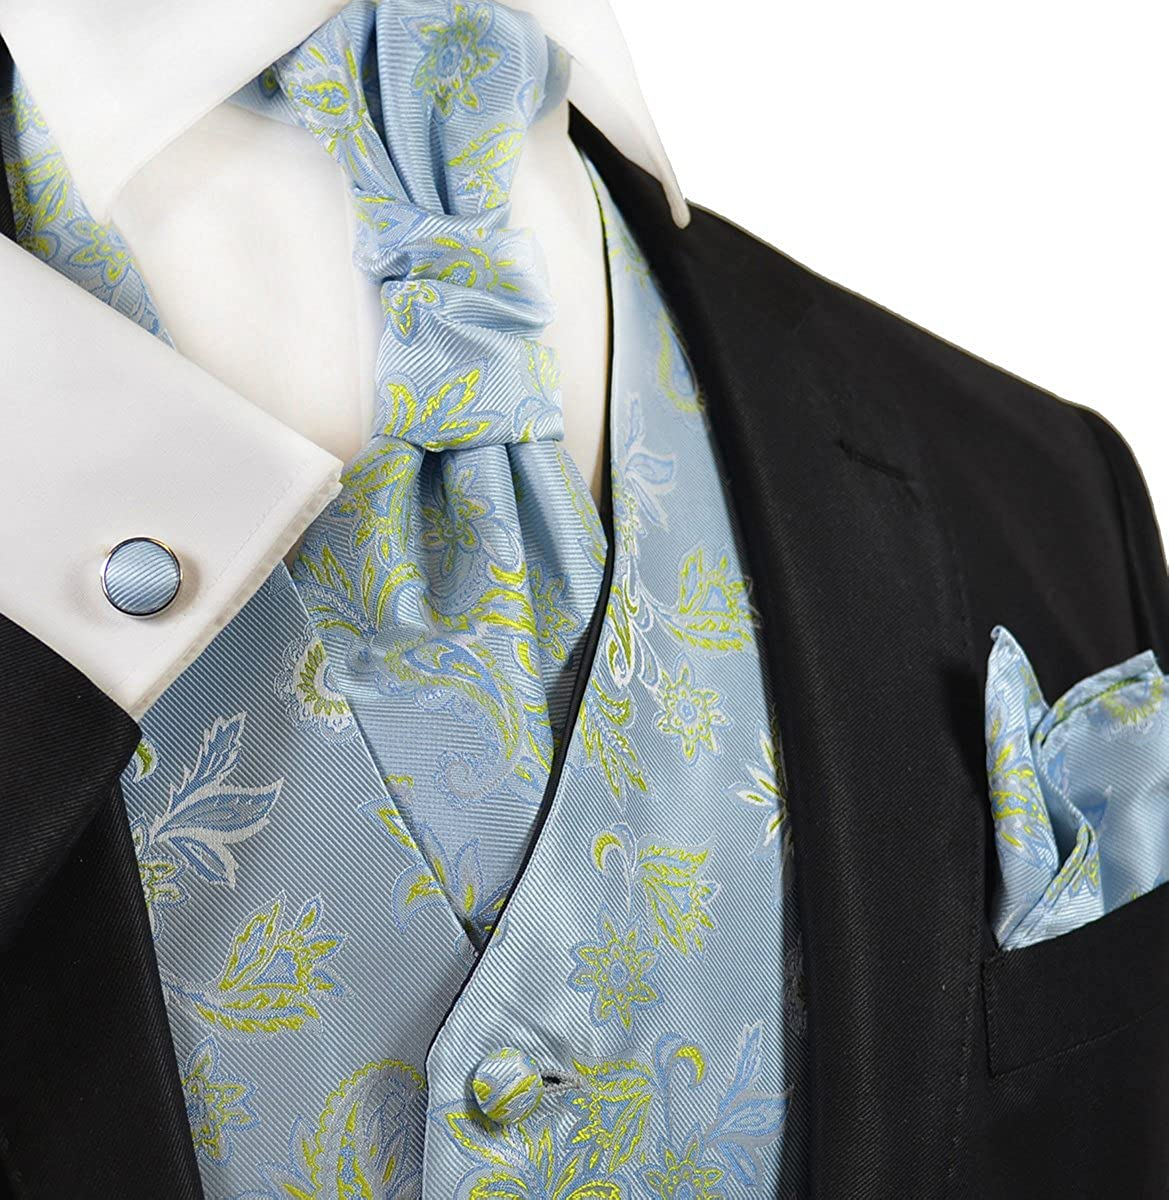 Paul Malone Sky Blue and Green Wedding Vest with Tie, Cravat, Pocket Square and Cufflinks